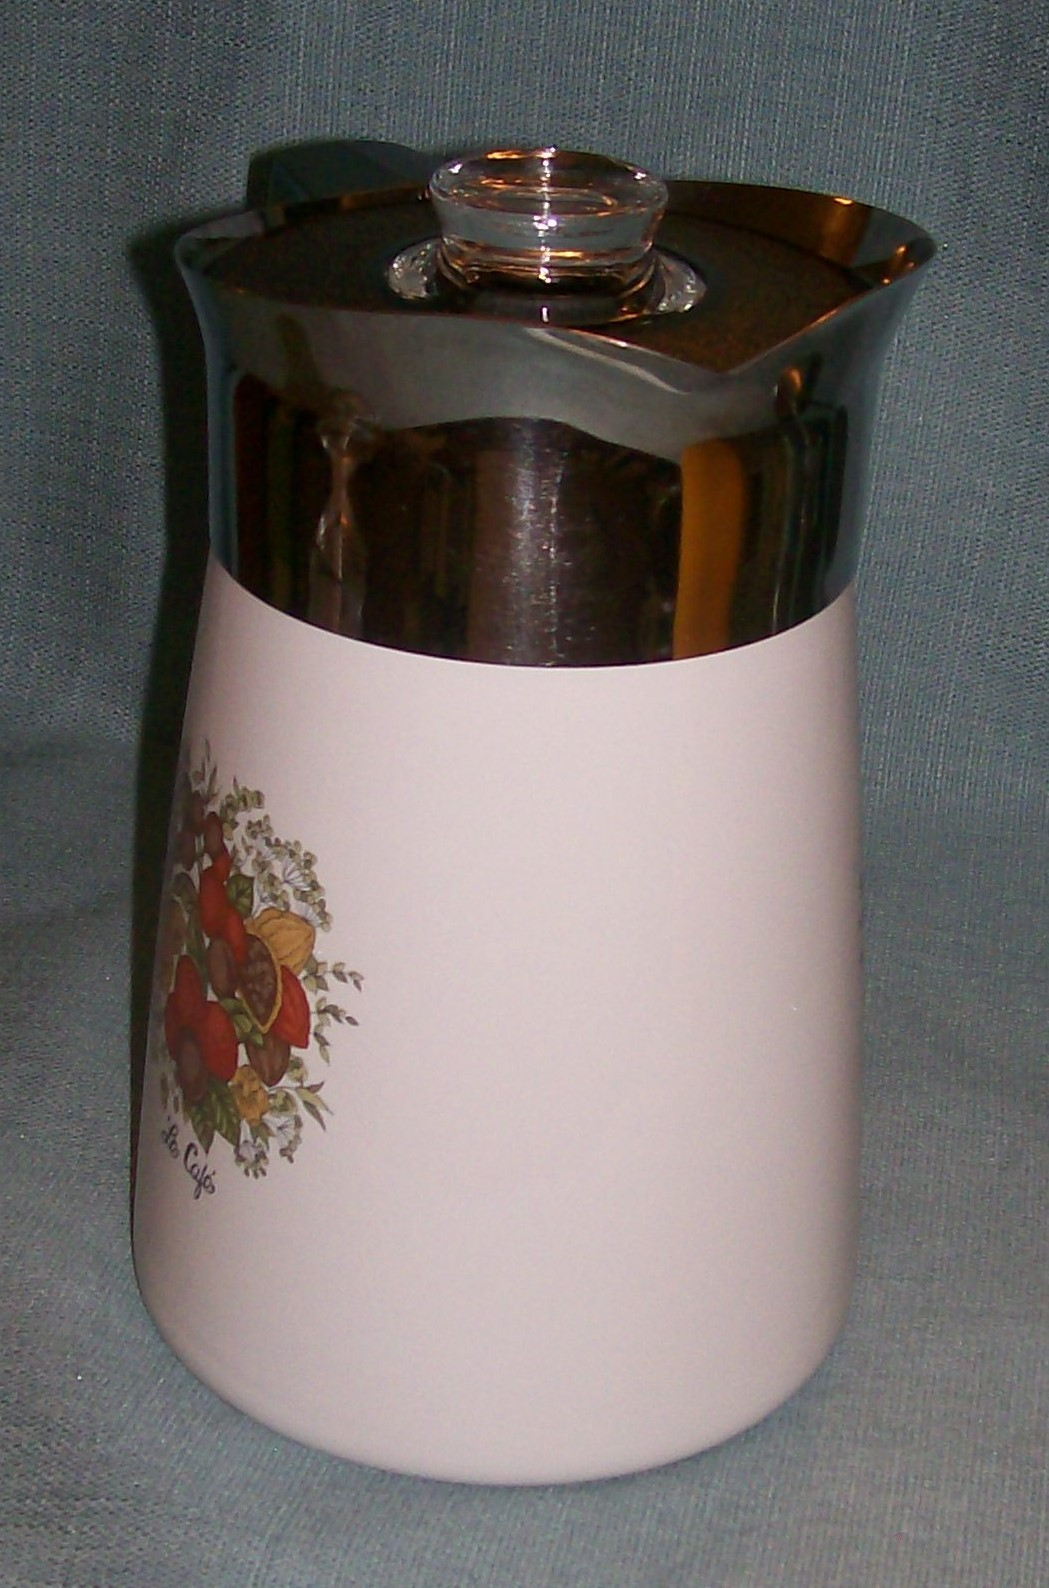 Vintage Corning SPICE OF LIFE Stove Top 6 Cup Coffee Pot / Percolator -P146 VGUC image 3